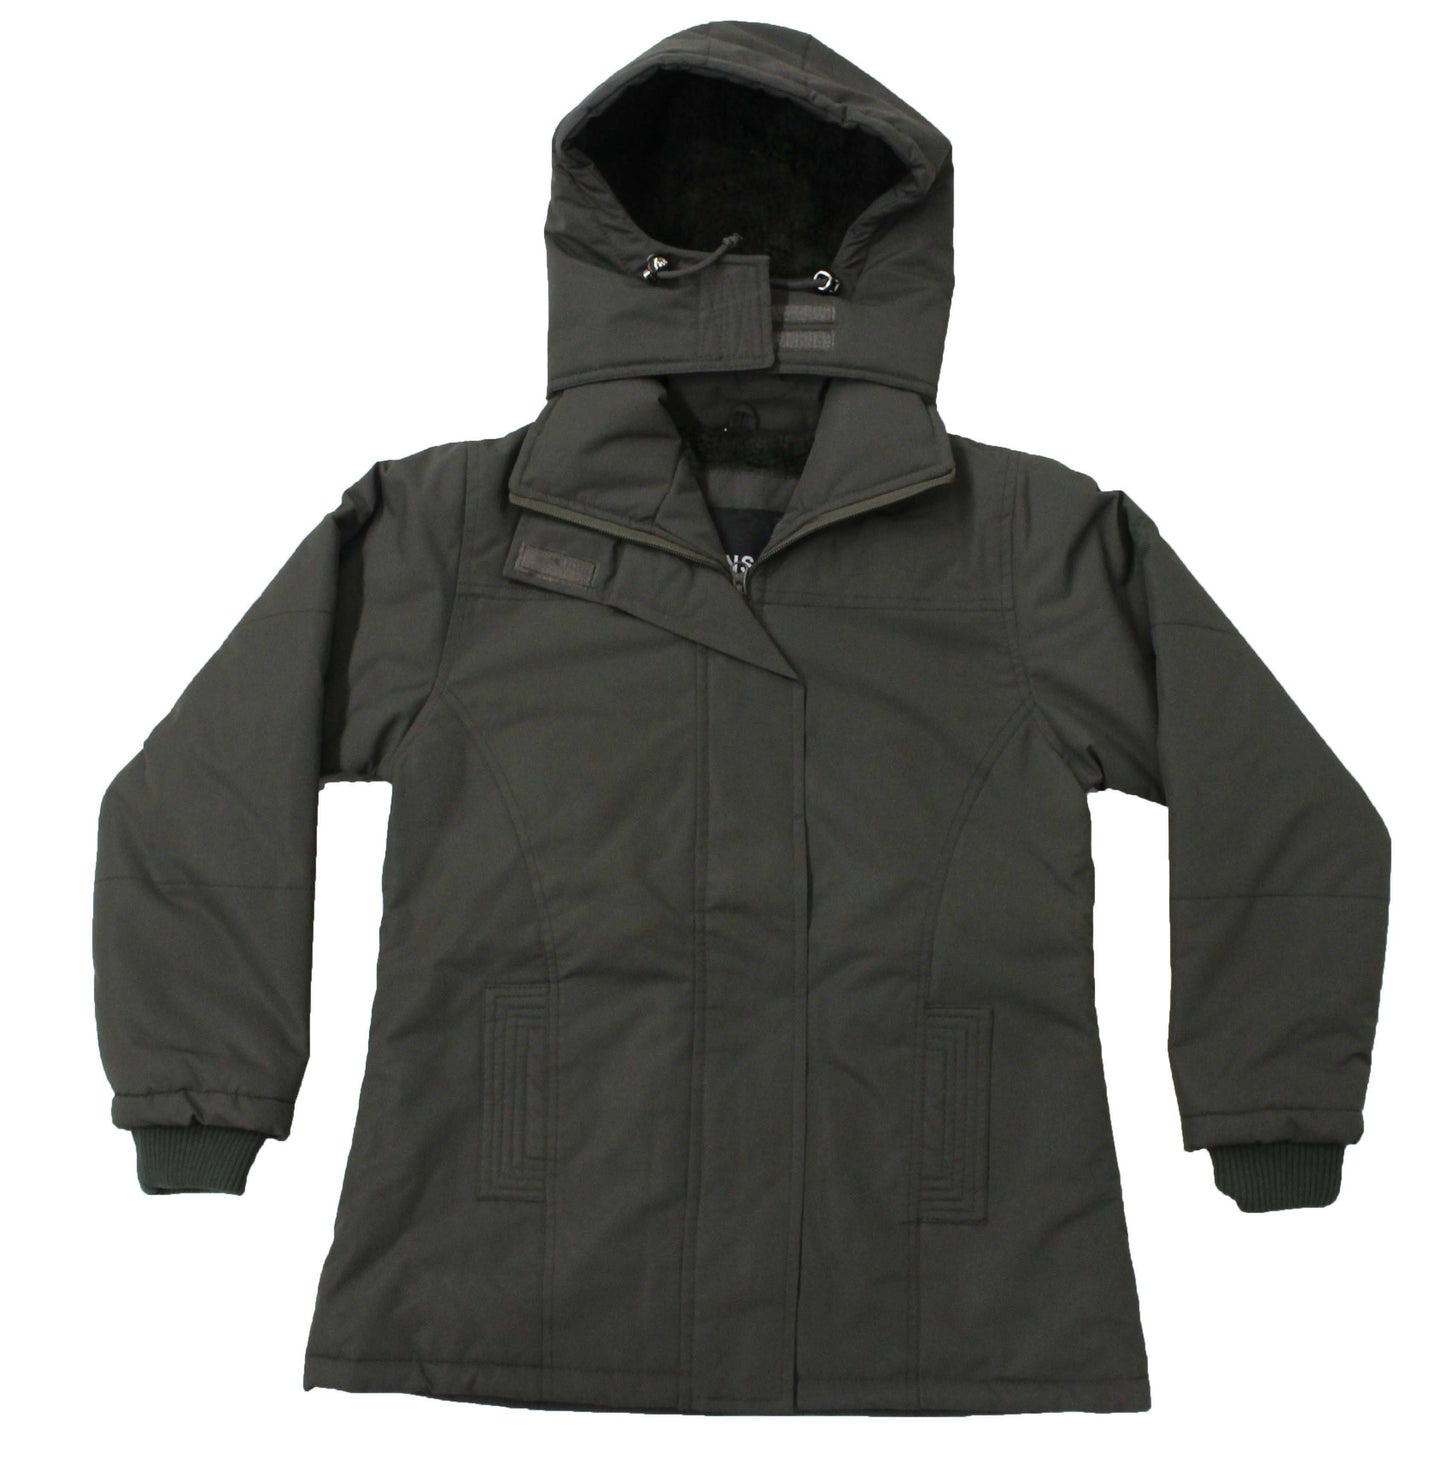 Romano nx Girl's Green Water Wind Snow Resistant Jacket With Hood romanonx.com